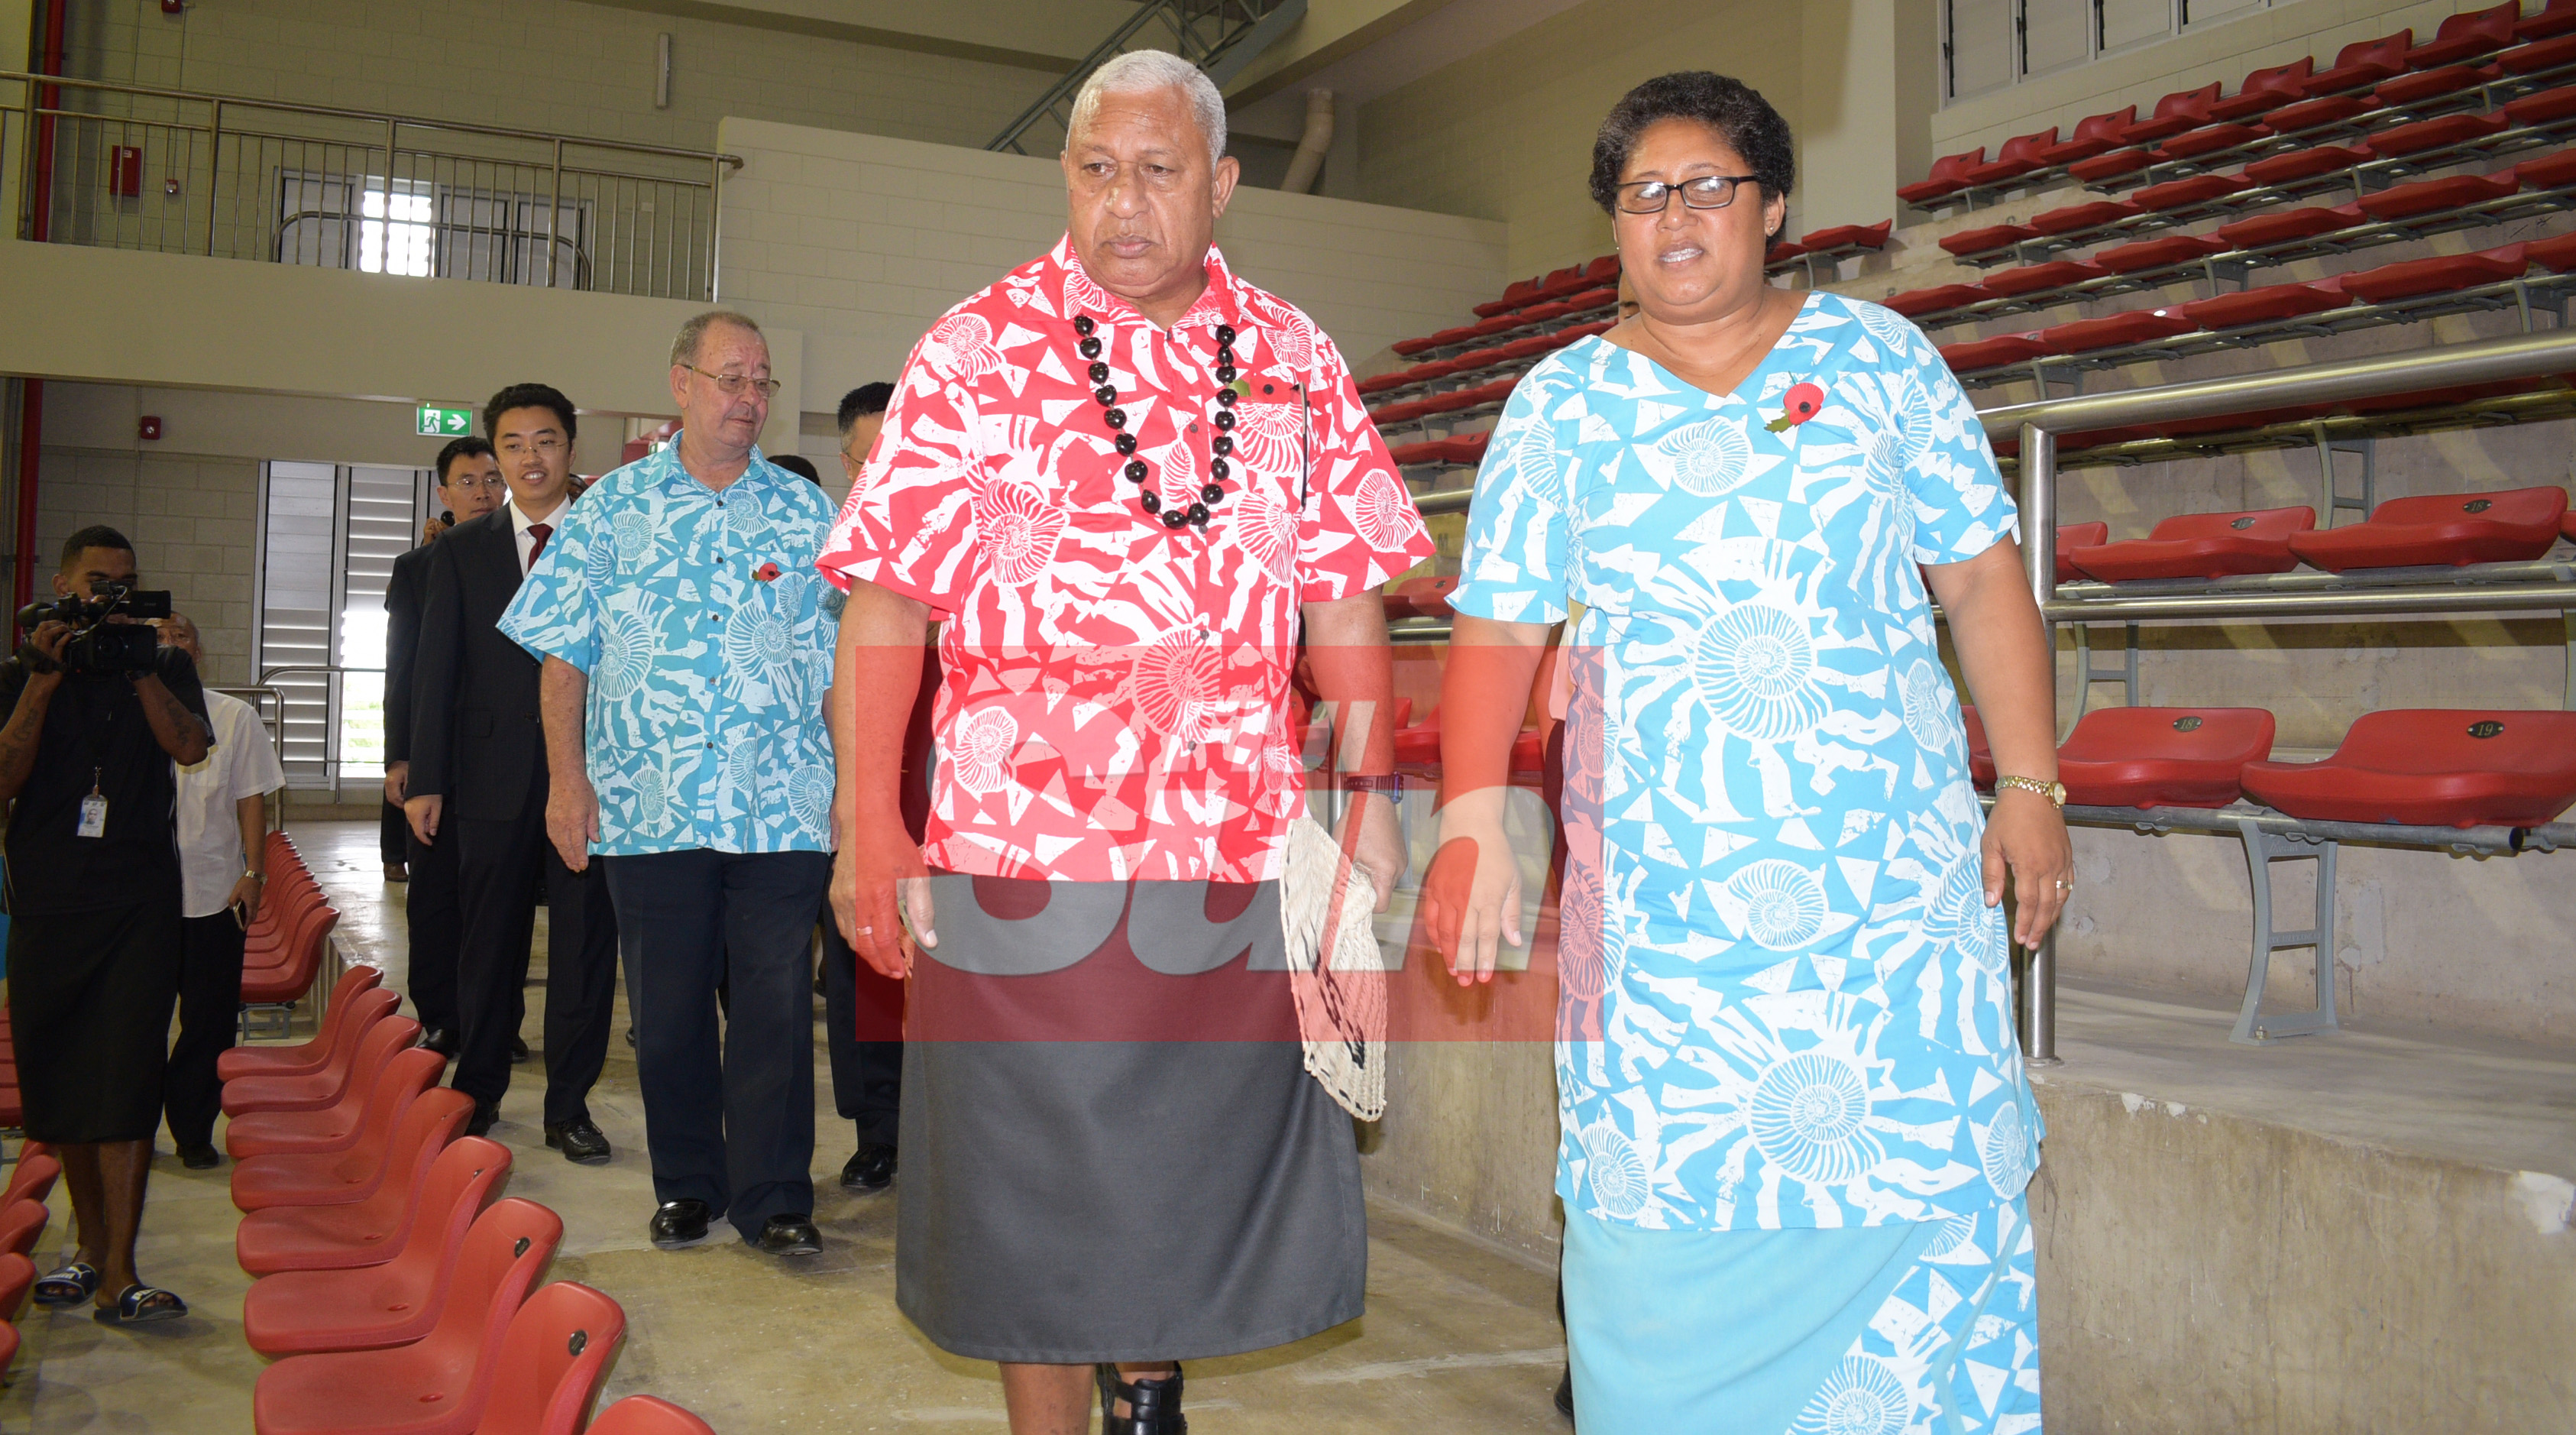 Prime Minister Voreqe Bainimarama with Fiji Sports Council Chief Executive Officer, Litiana Loabuka (right) followed by Board Chairman Peter Mazey during the opening of the renovated Vodafone Arena on November 8, 2019. Photo: Ronald Kumar.